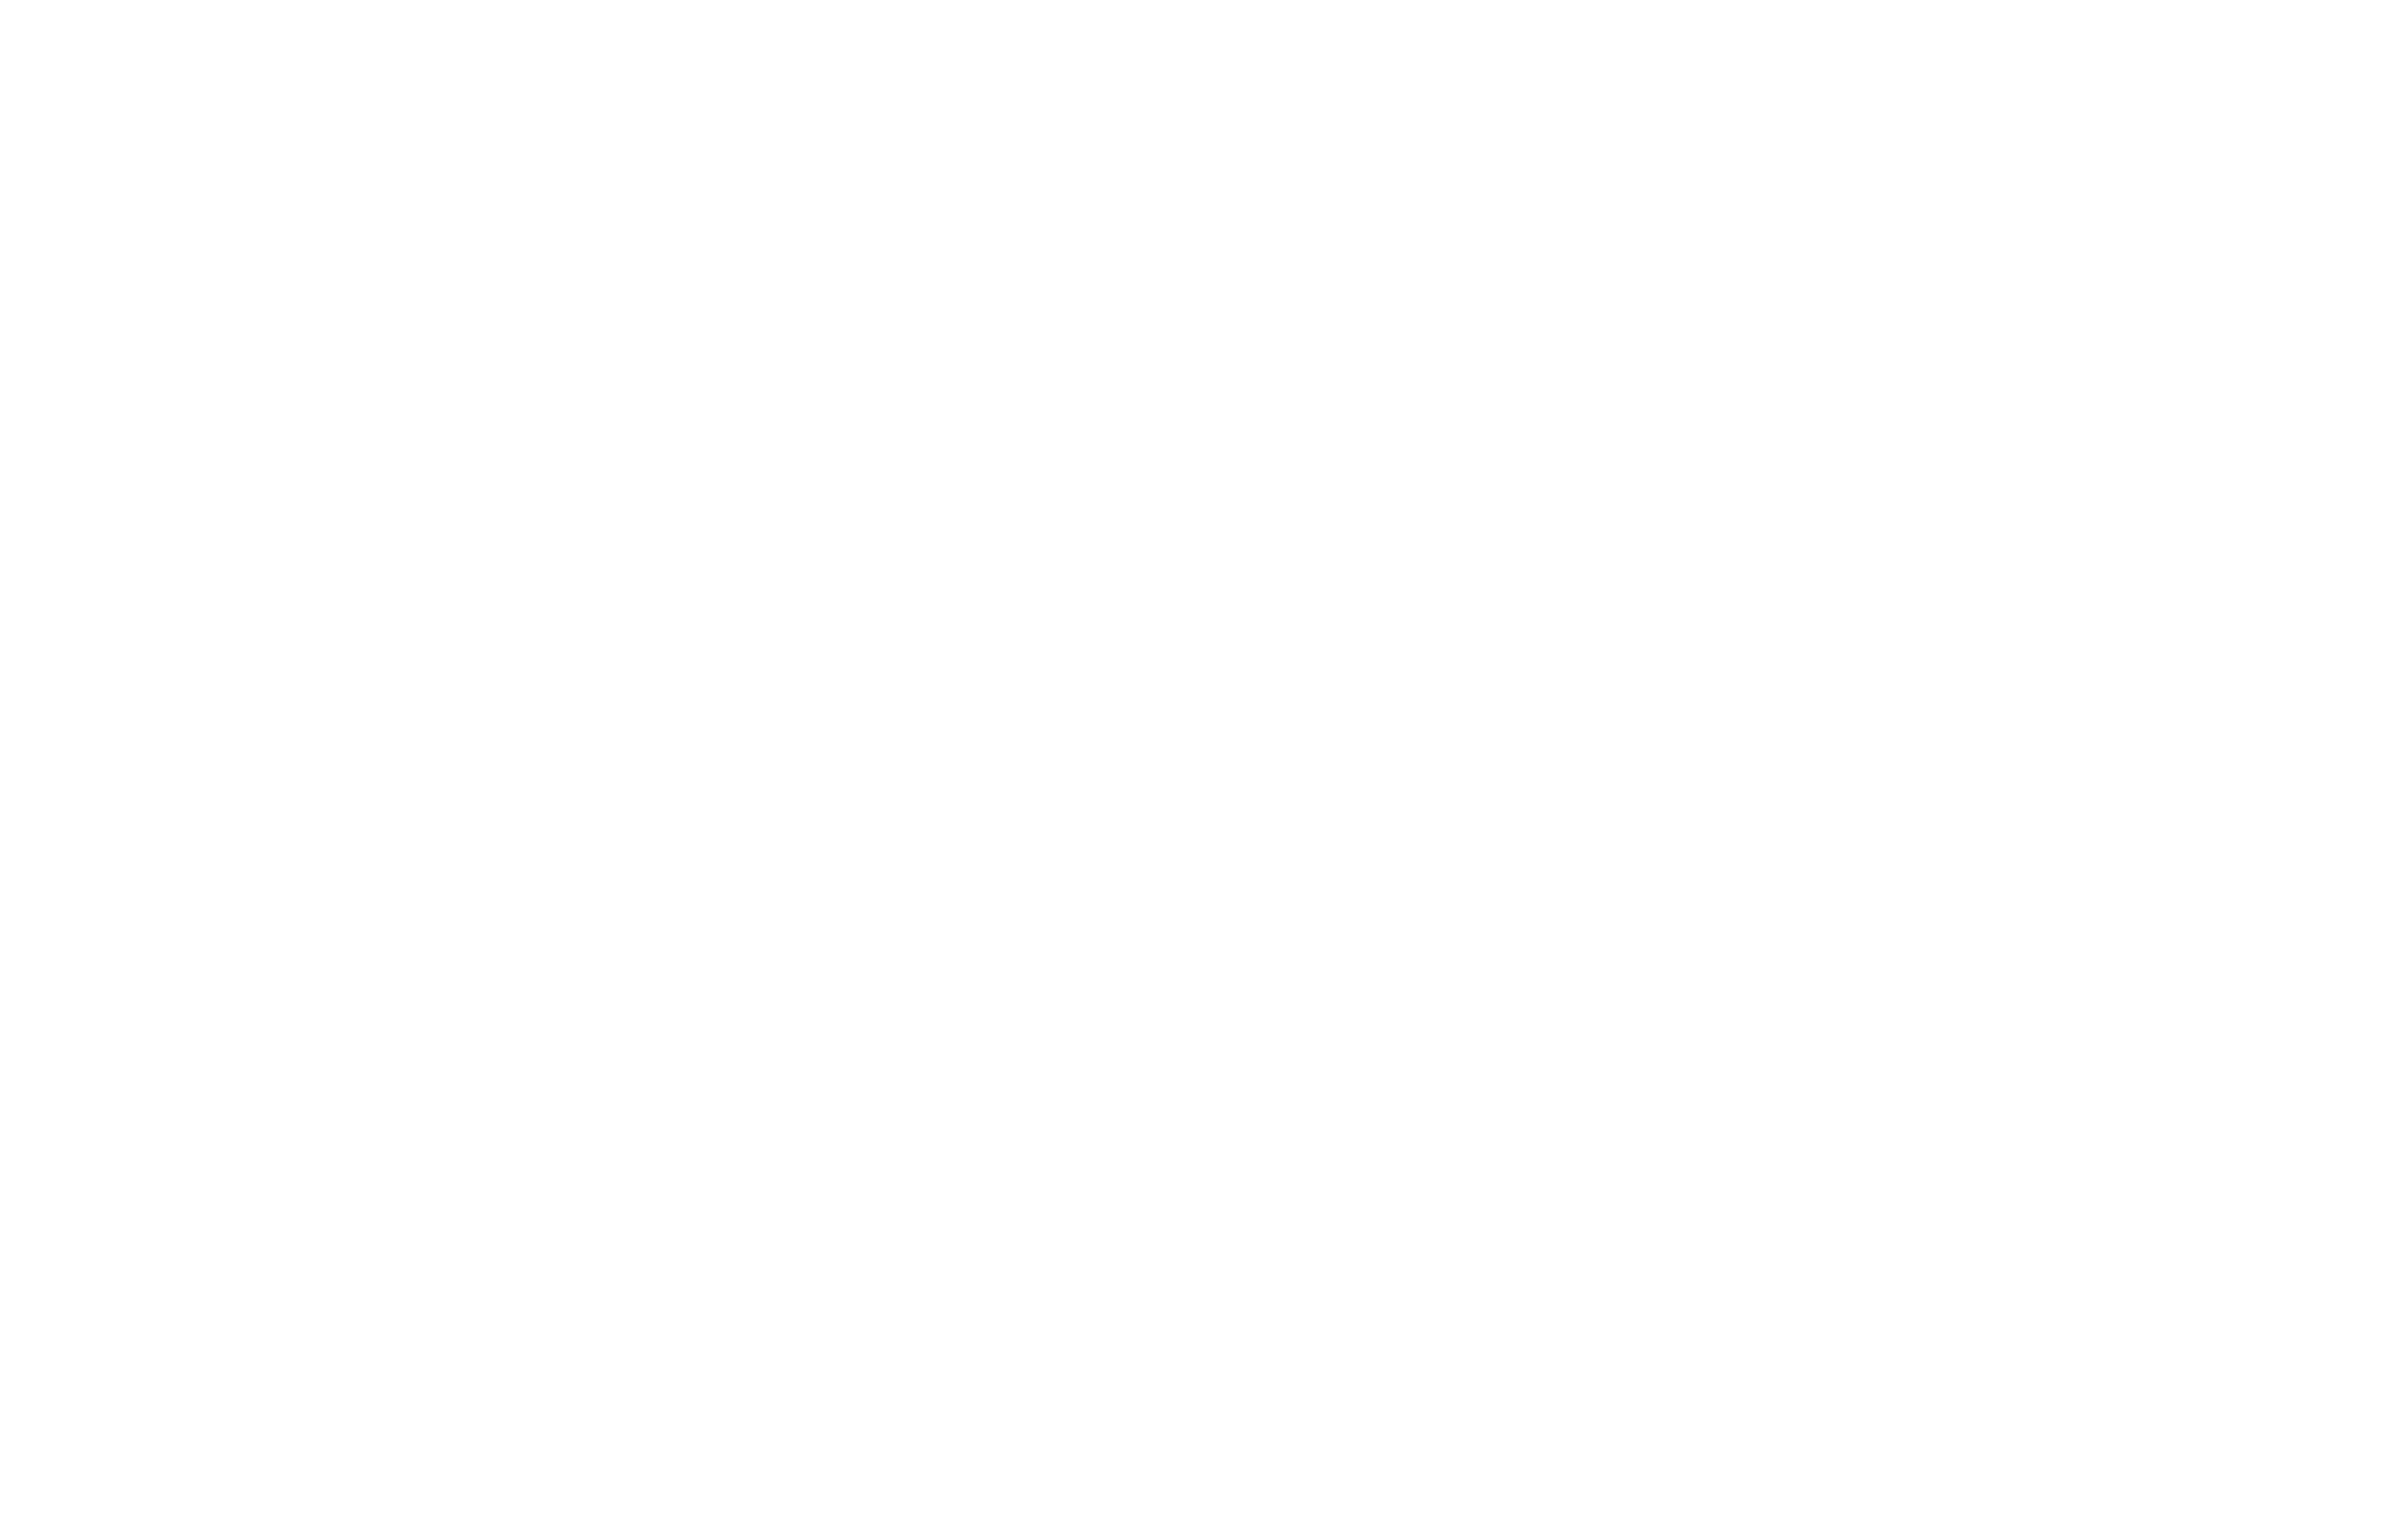 Melbourne's No. Destination for new car banner